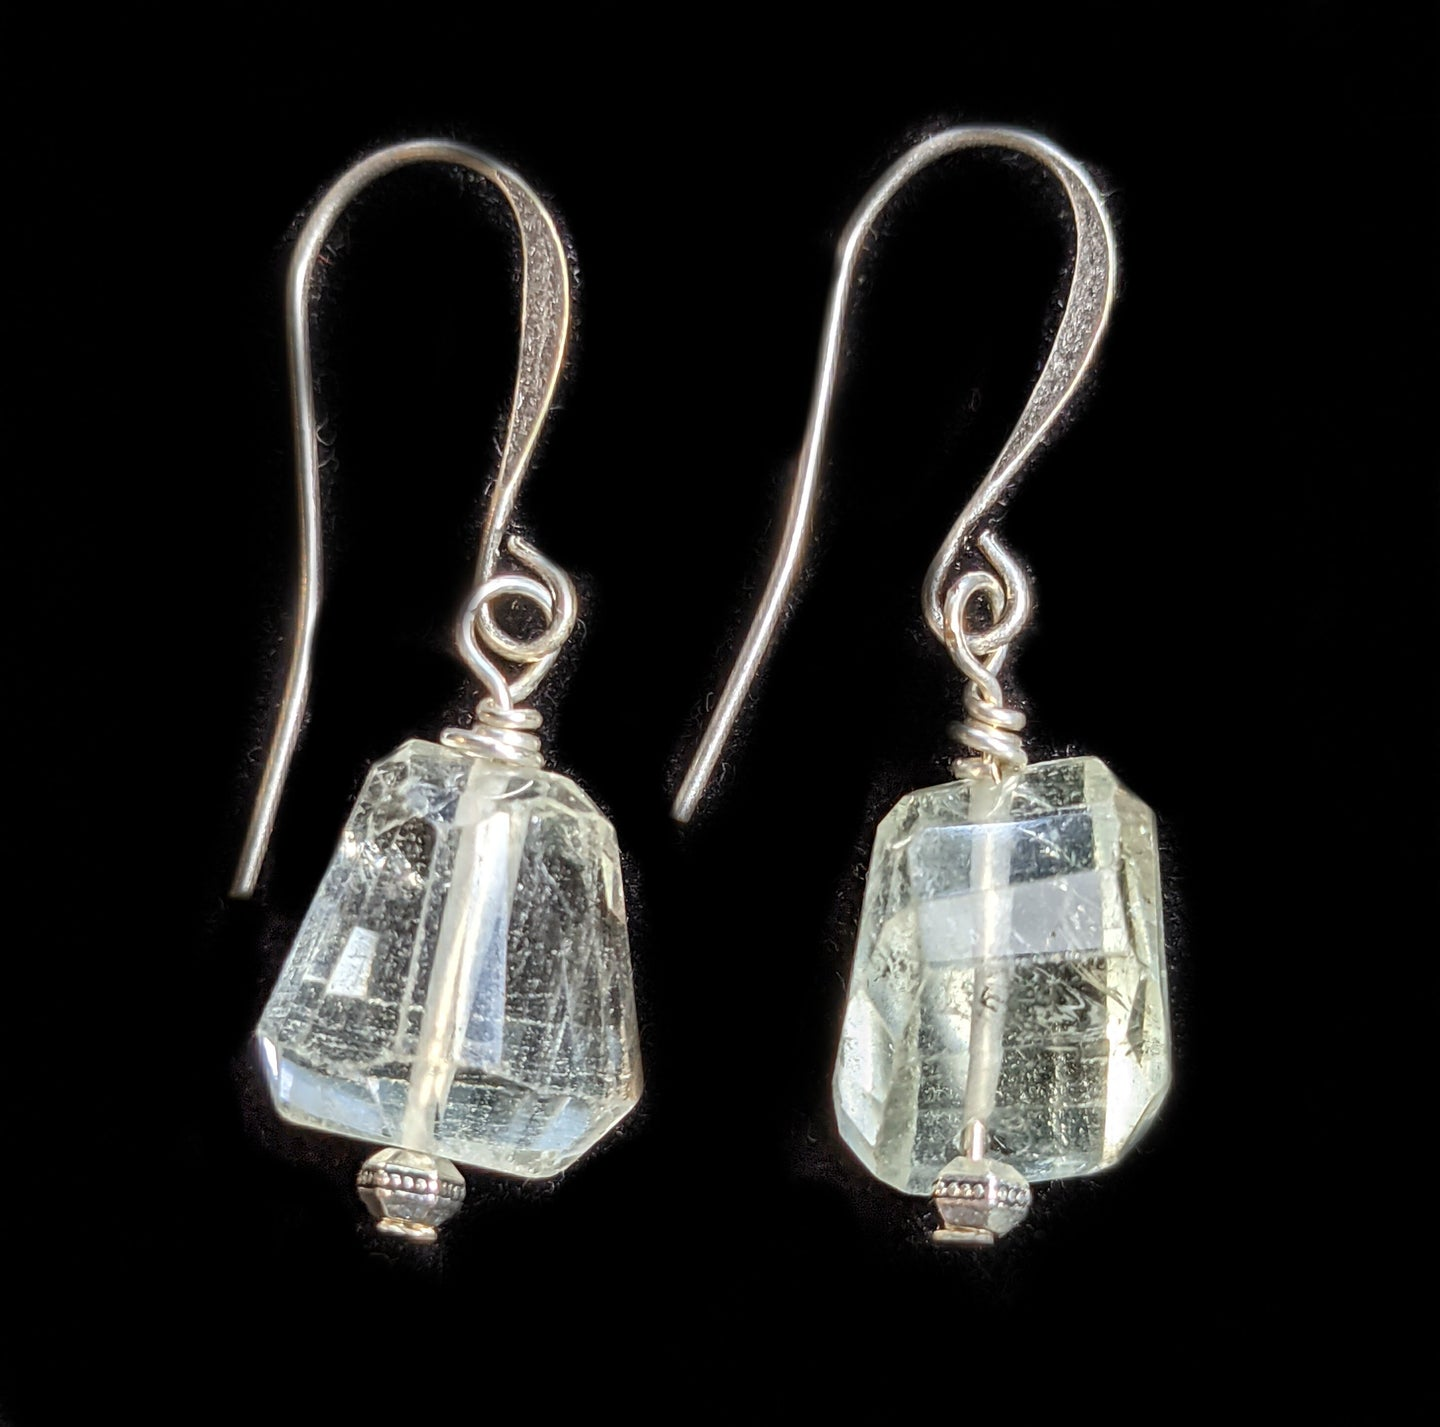 green amethyst earrings - sunroot studio